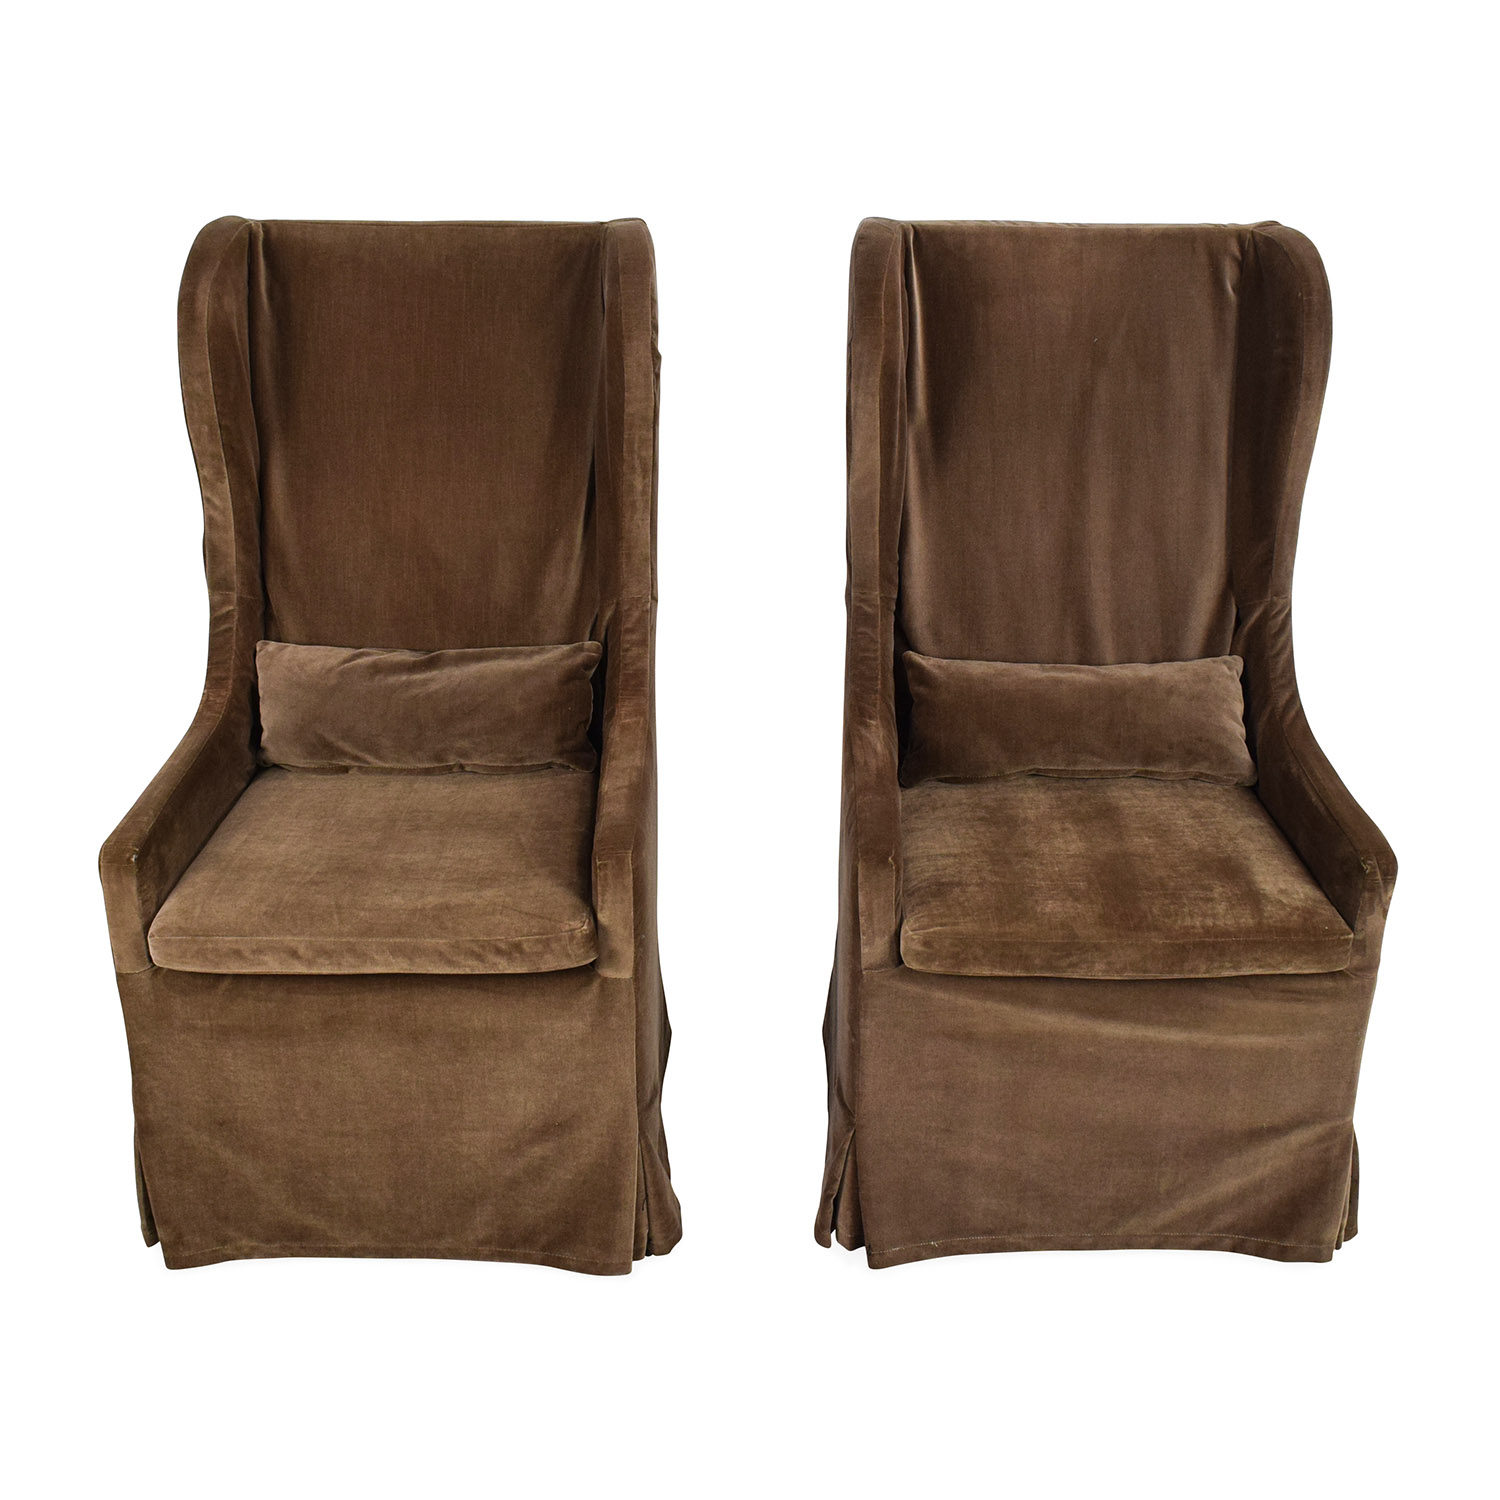 Restoration Hardware Restoration Hardware Belgian Wingback Chair Pair discount